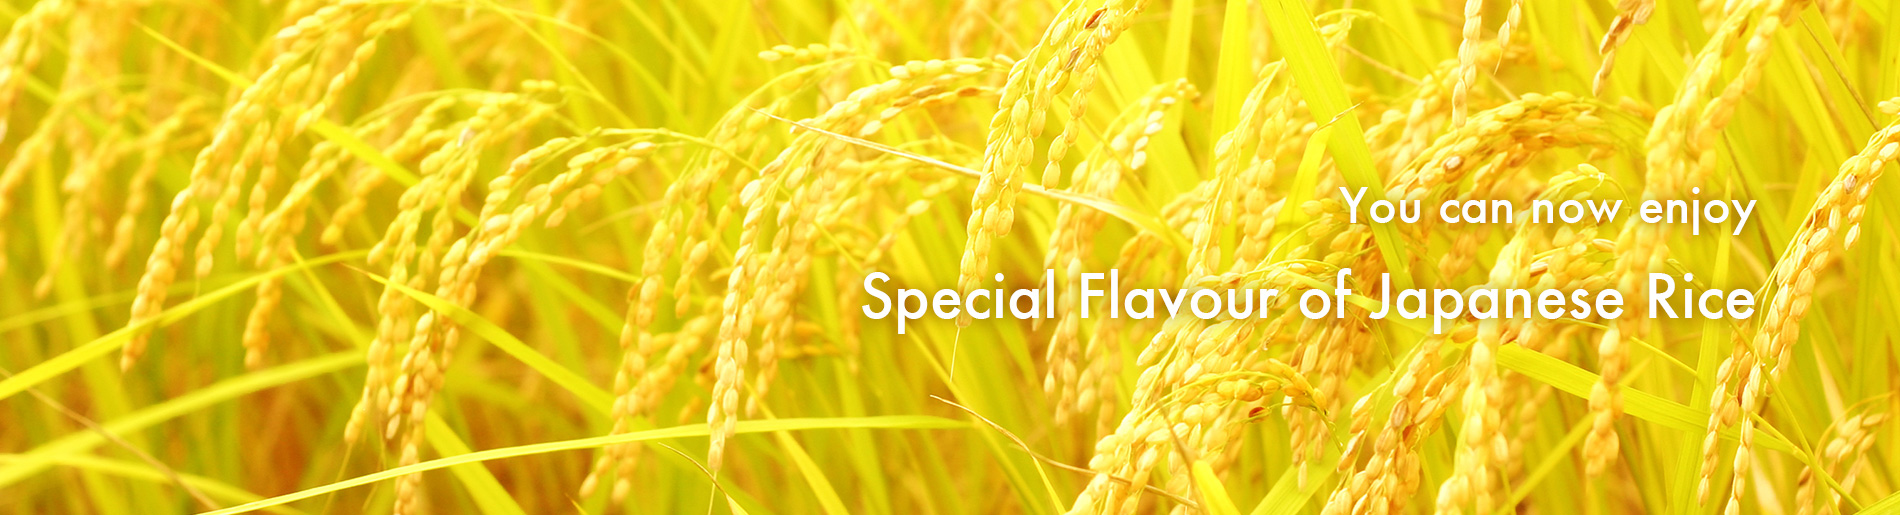 Special flavour of Japanese Rice